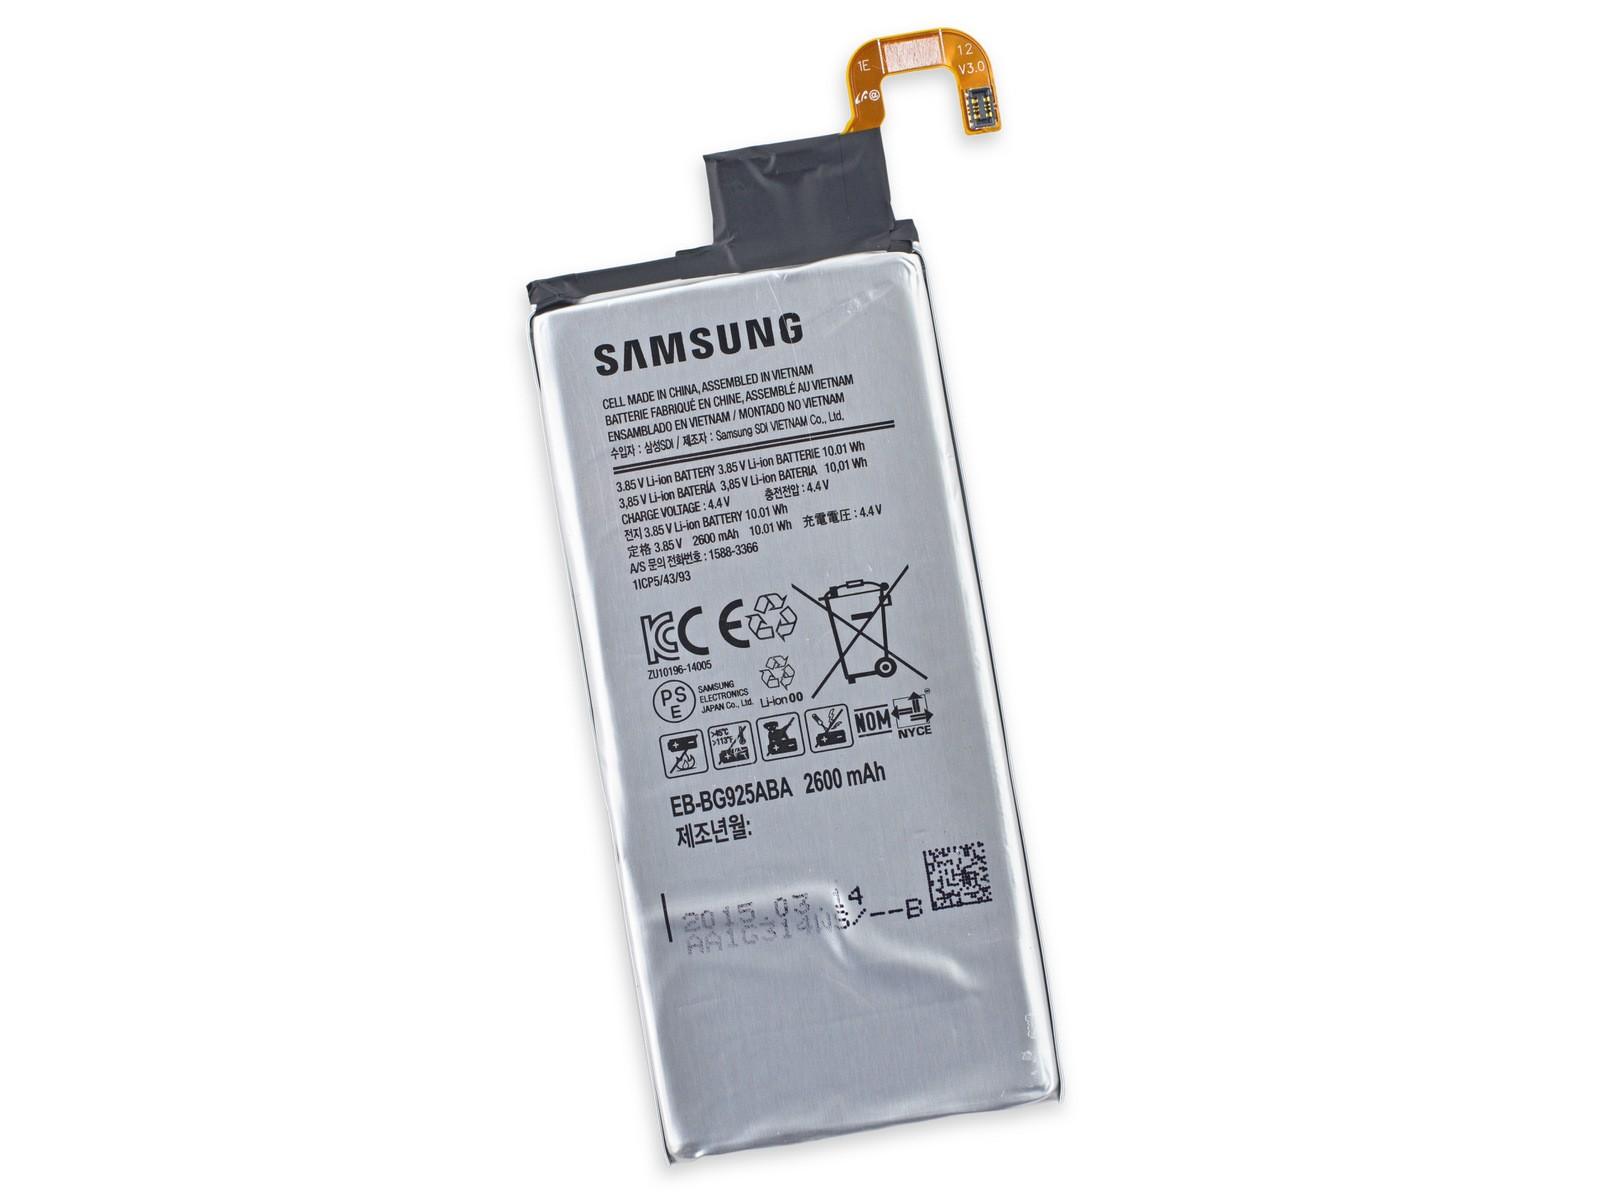 Samsung Galaxy S6 G920 S6 Edge G925 S6 Edge+ Plus G928 Battery